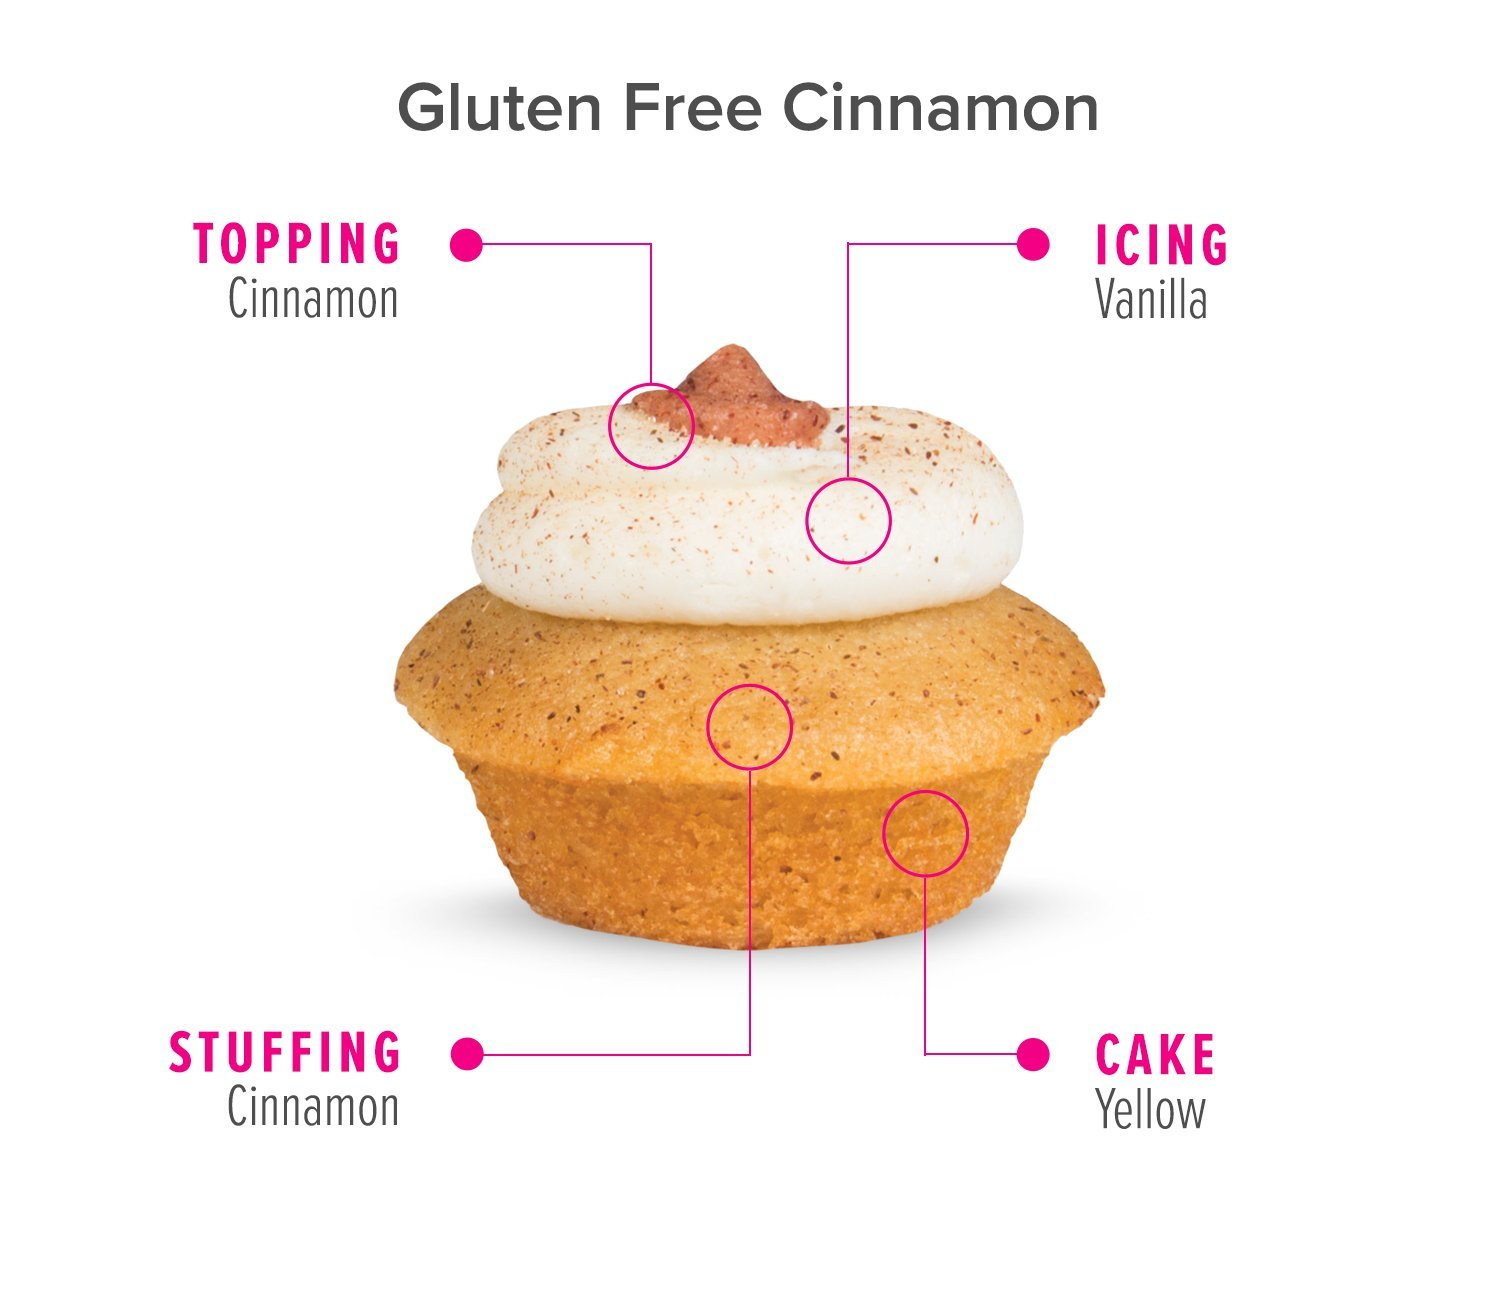 Baked by Melissa Cupcakes The OMGF (Oh My Gluten Free) - Assorted Bite-Size Cupcakes, 100 Count by Baked by Melissa (Image #4)